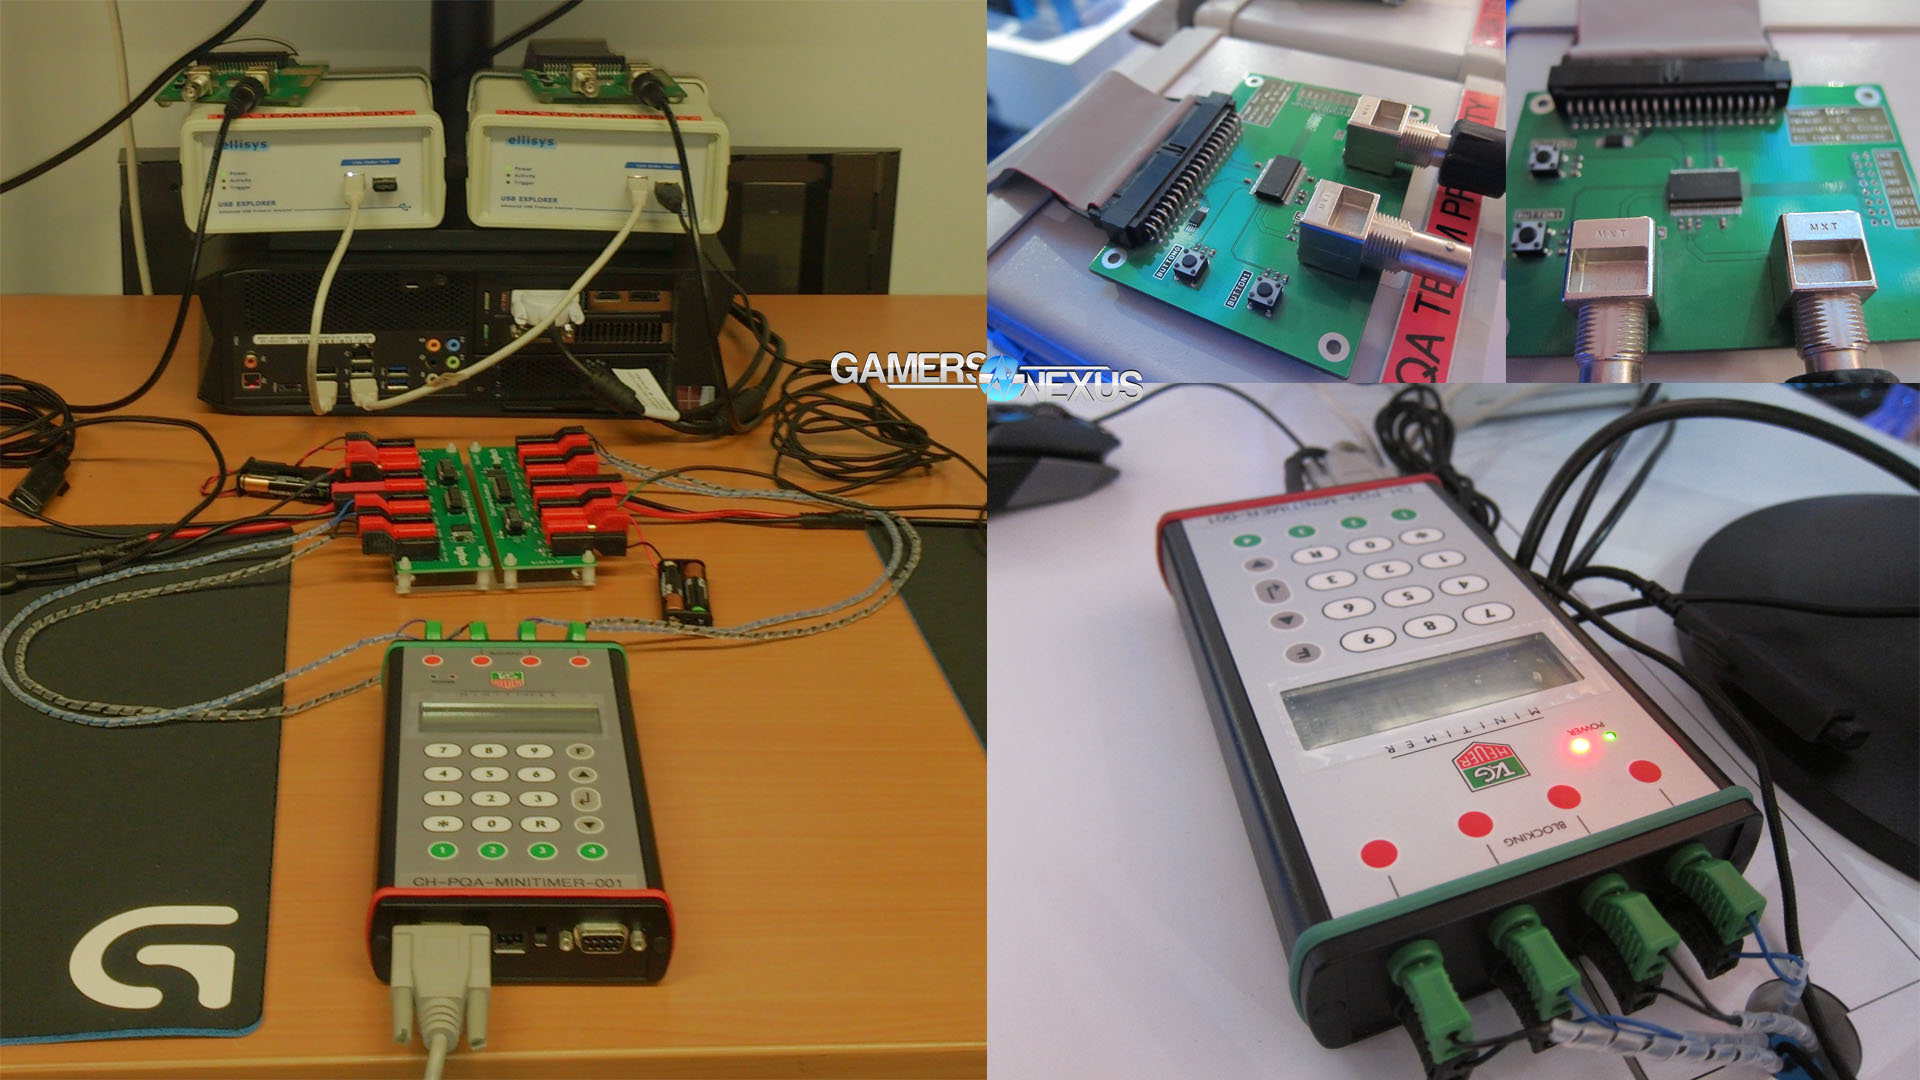 Wireless Mouse Click Latency Analysis Using Breadboard & USB